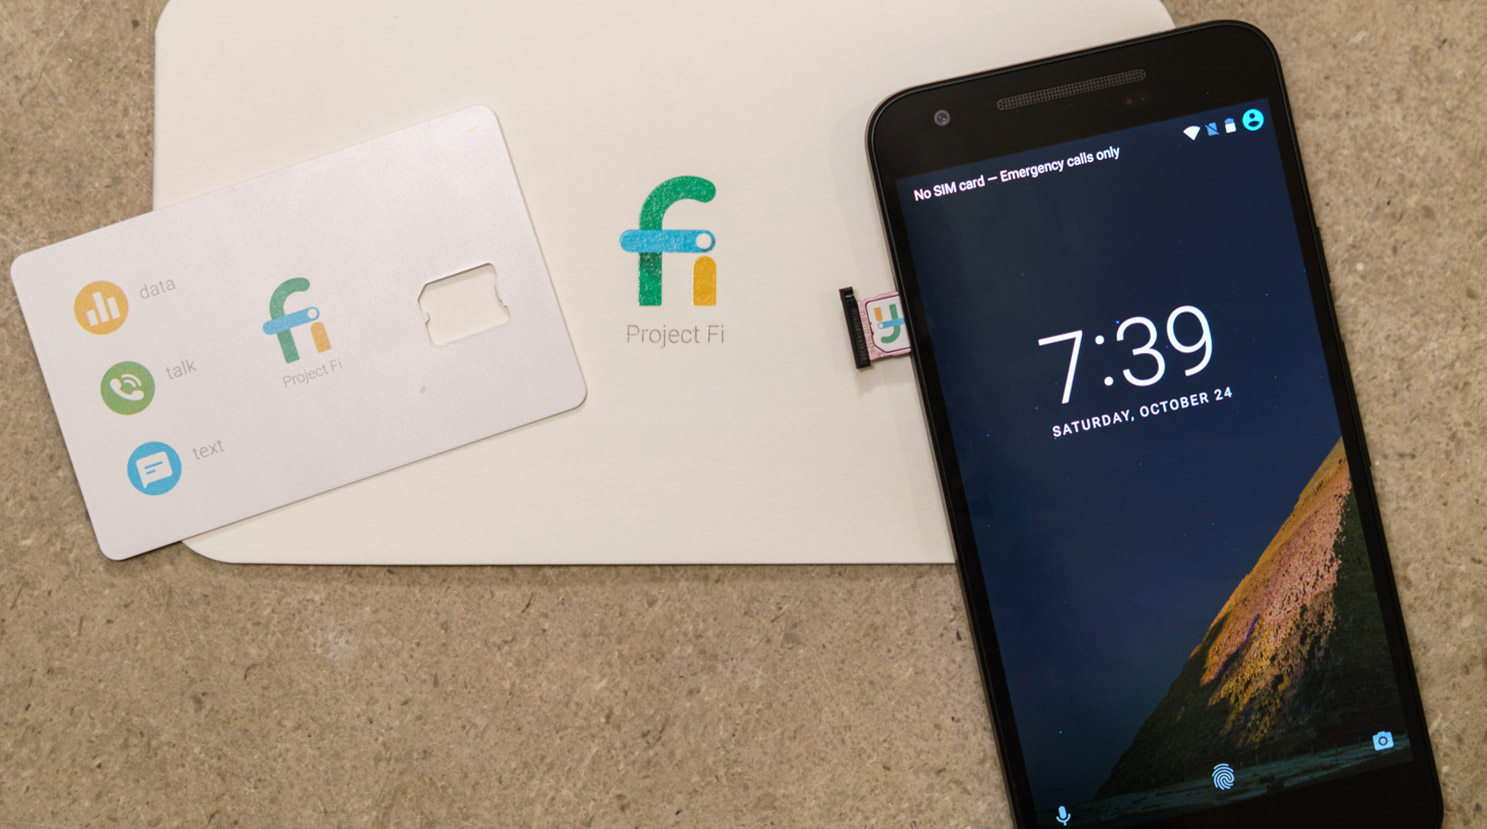 Nexus 5X and Google Project Fi